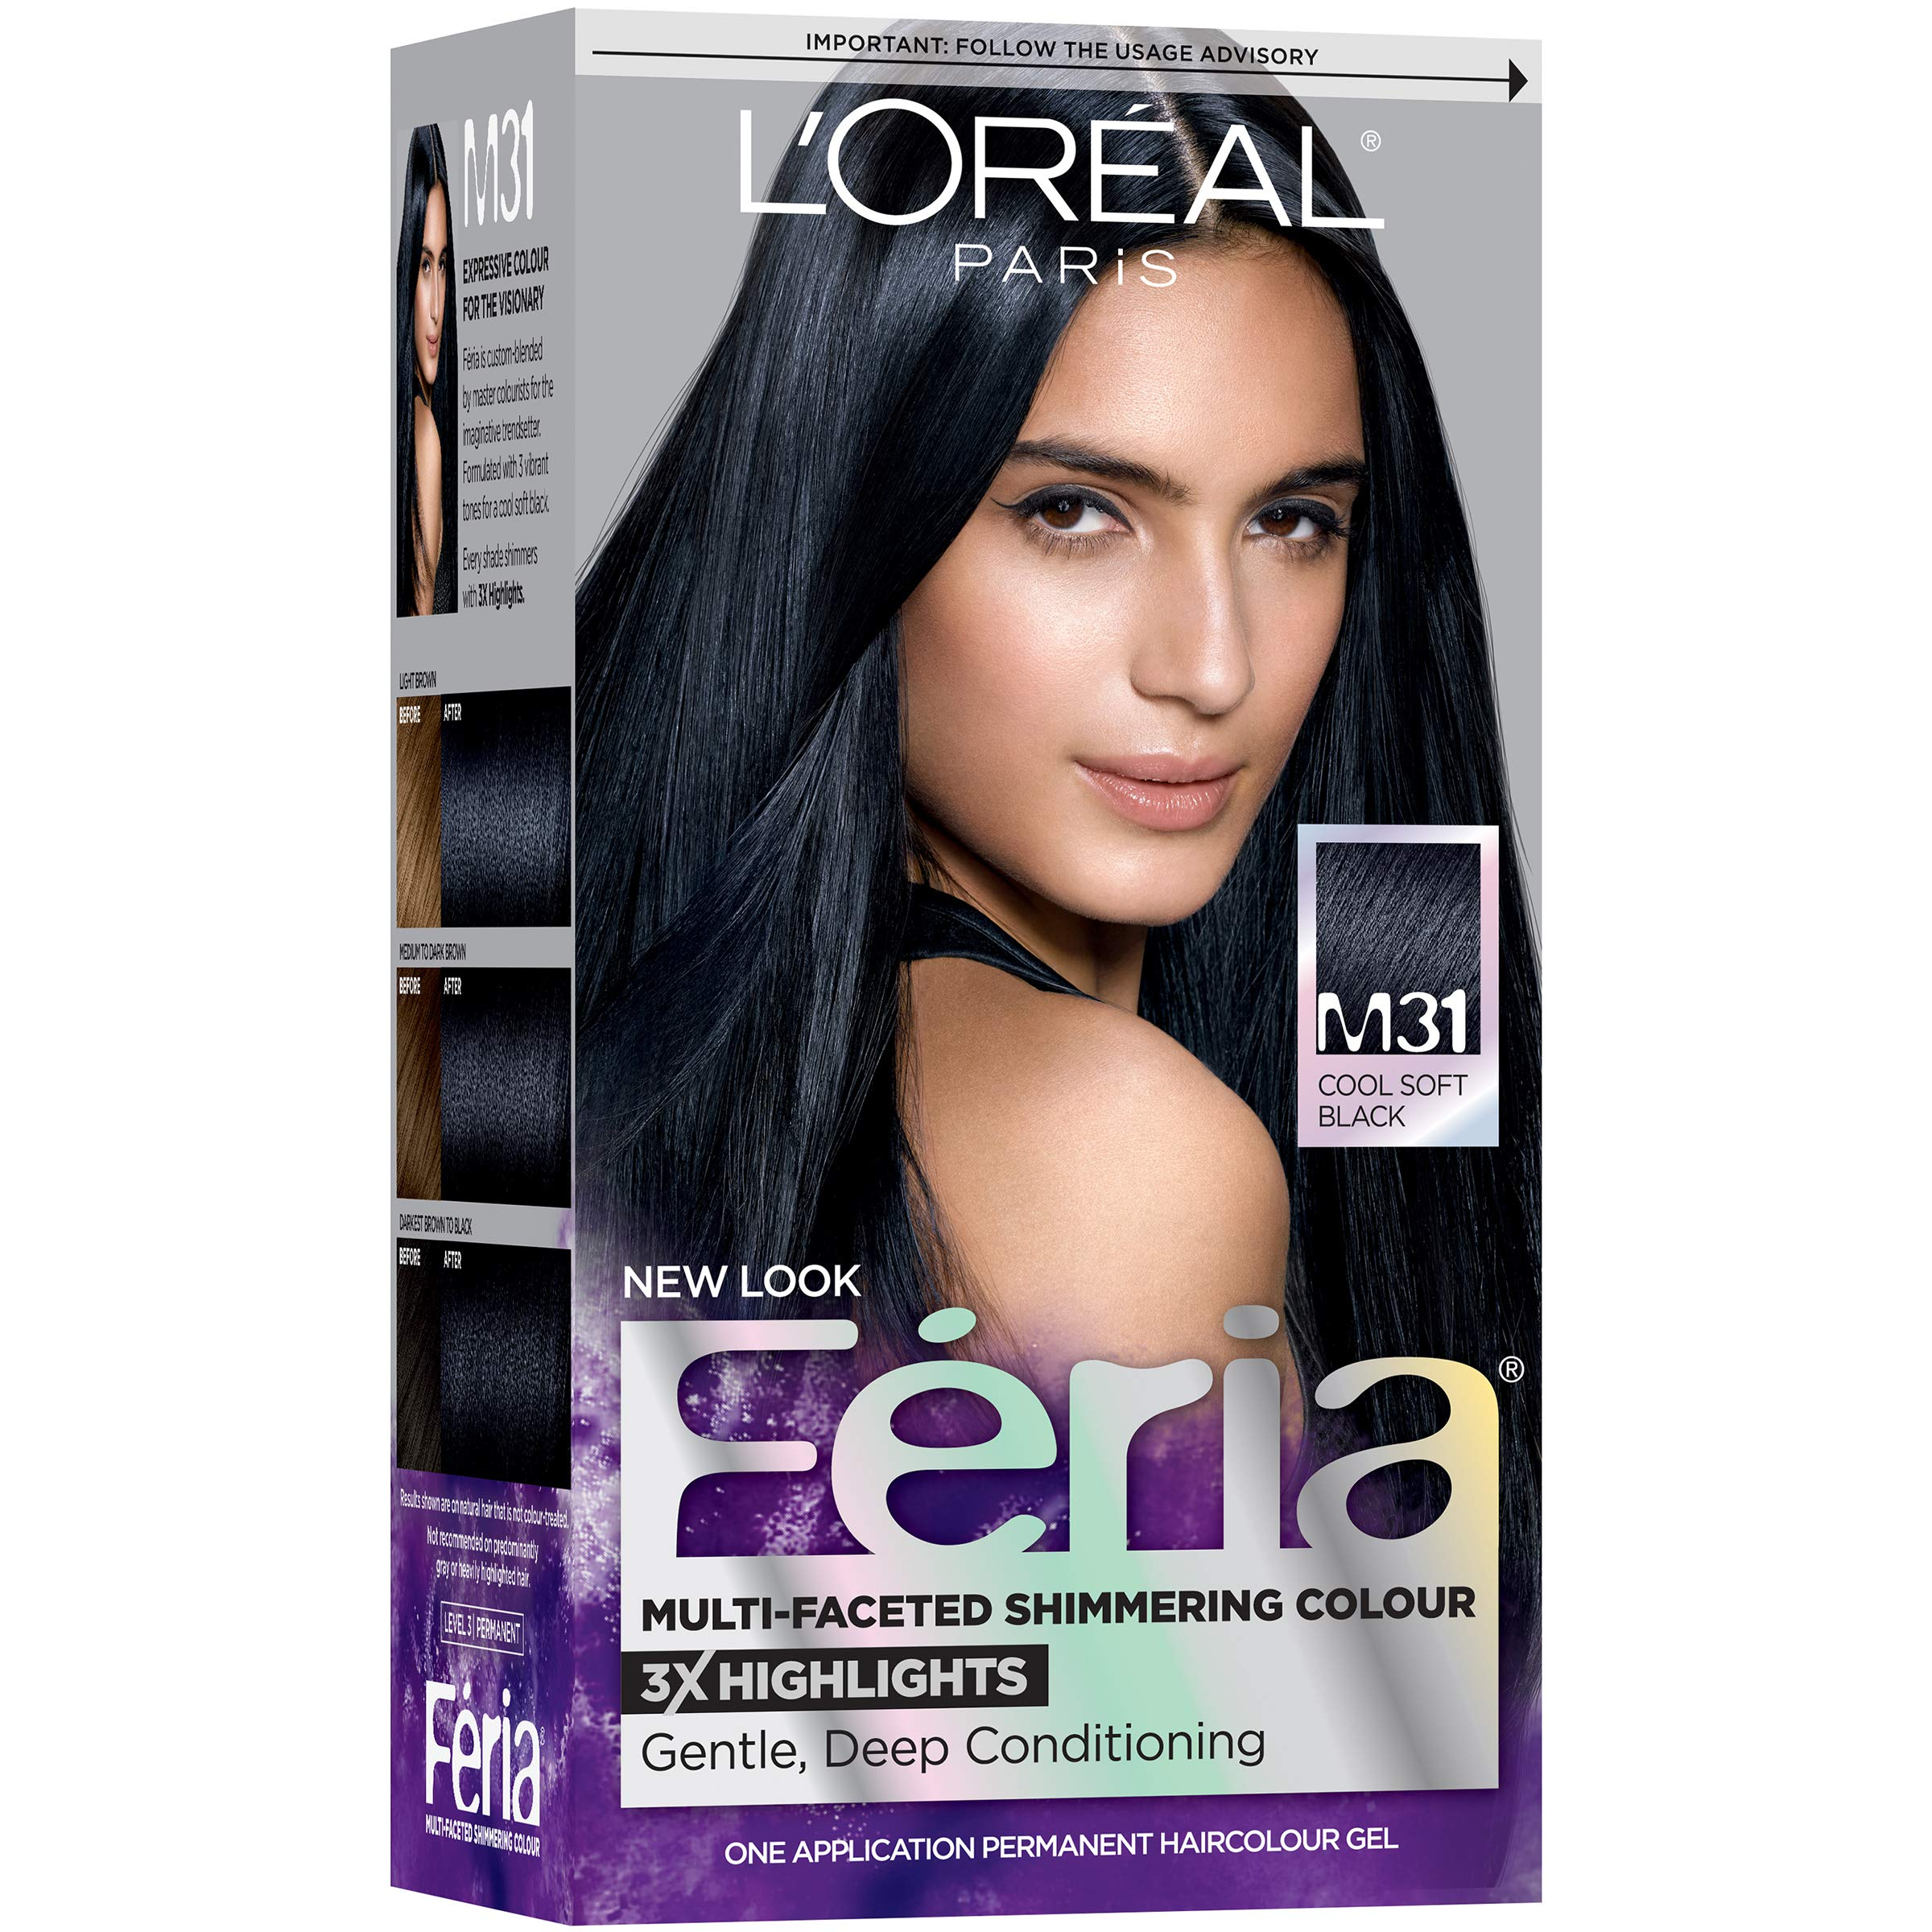 L'Oreal Paris Feria Midnight Collection Multi-Faceted Shimmering Color, Soft Blue Black [M31] 1 ea (Pack of 2) by L'Oreal Paris